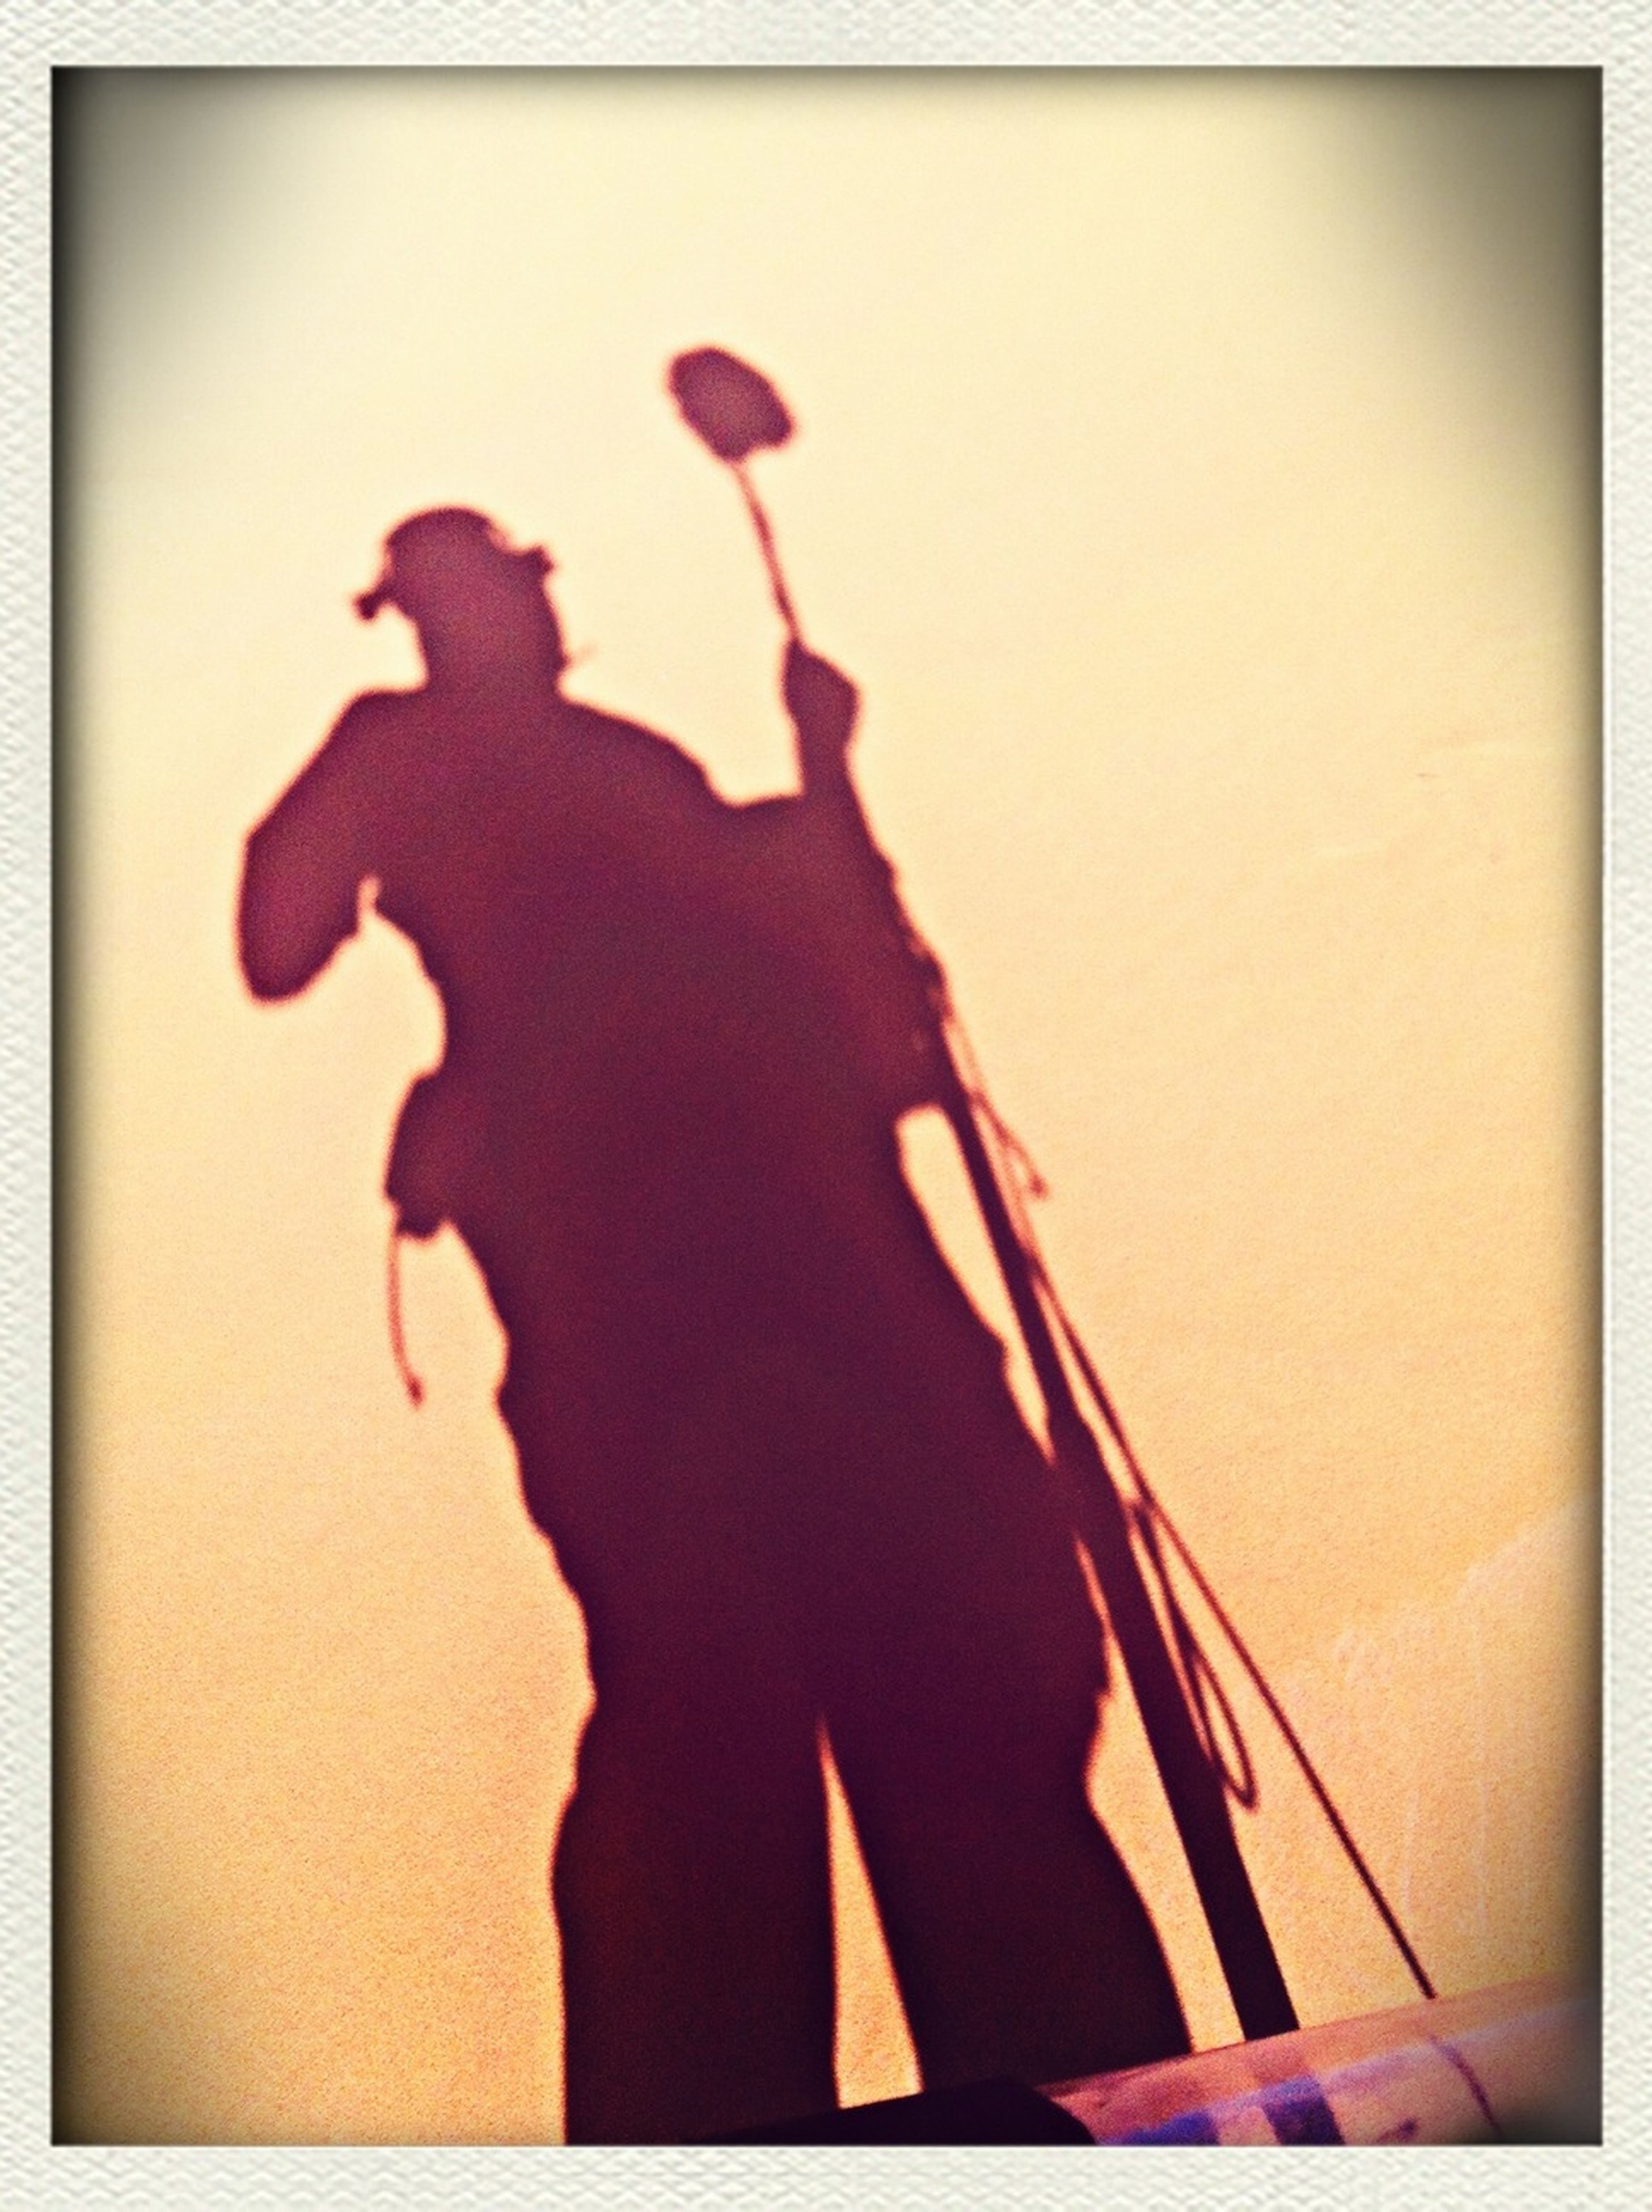 real people, silhouette, one person, men, shadow, standing, outdoors, day, one man only, sky, people